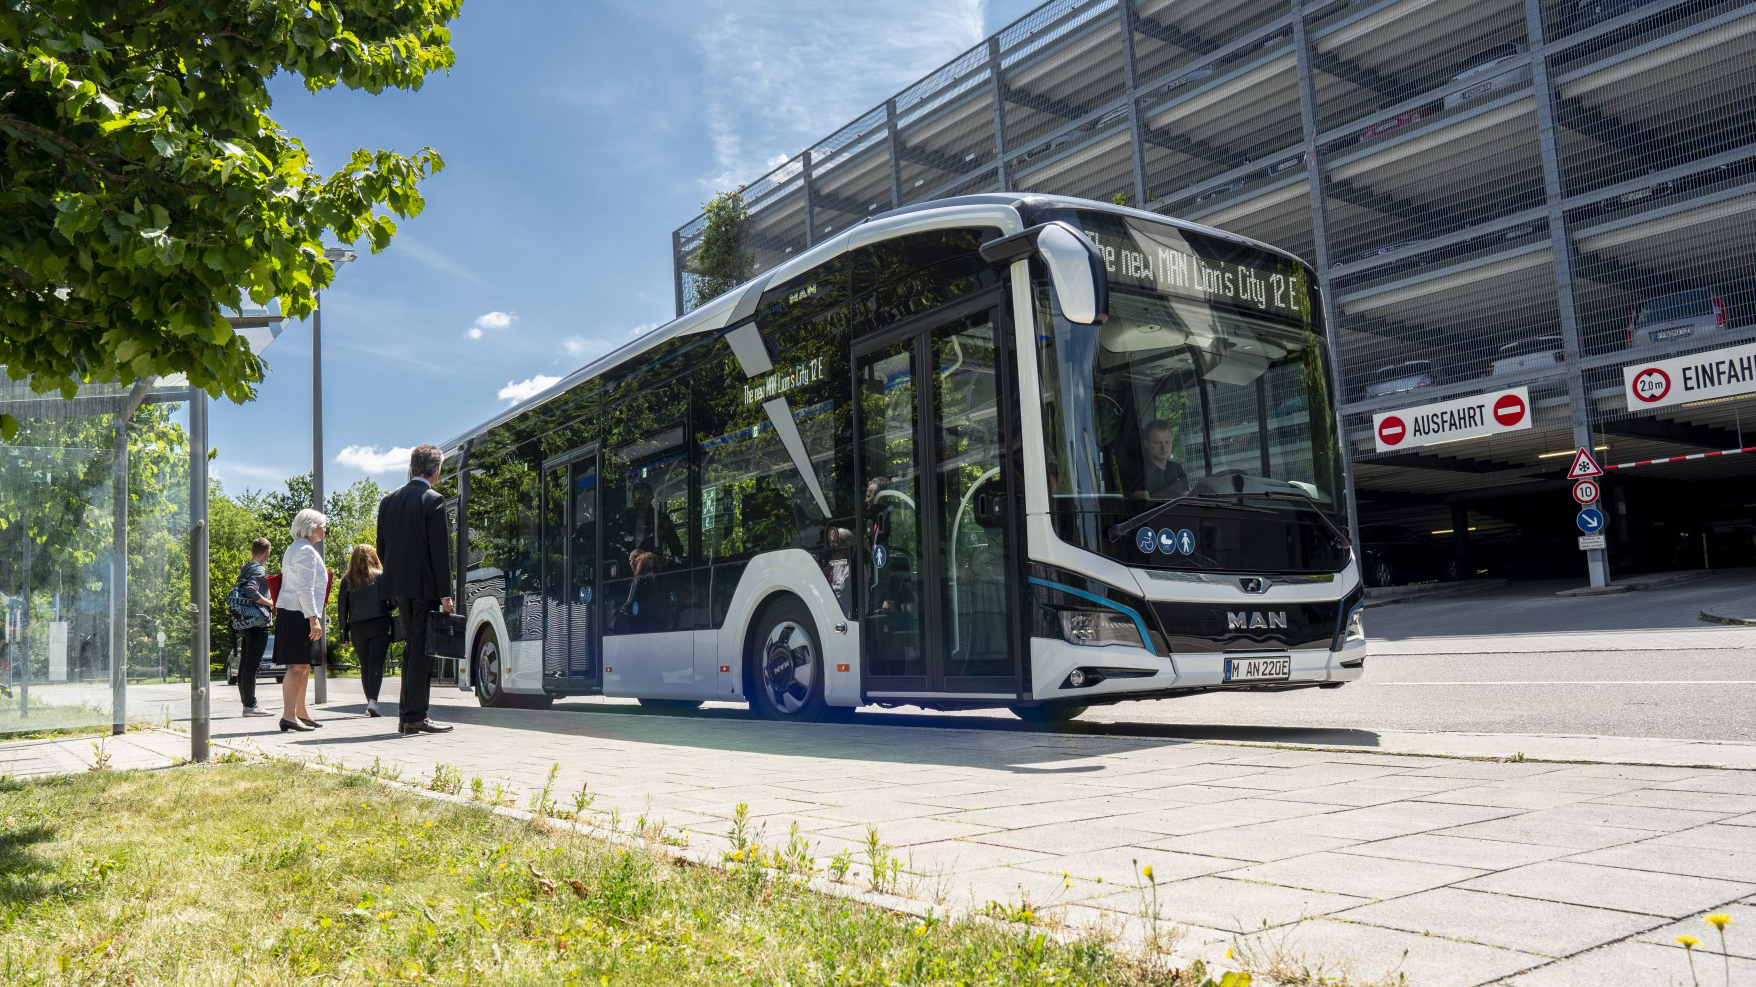 The transport company Verkehrsbetriebe Hamburg-Holstein (VHH) is setting a course for the emissions-free mobility of tomorrow, thereby bringing the first sales success for electric buses to MAN Truck & Bus – a milestone for both VHH and MAN.